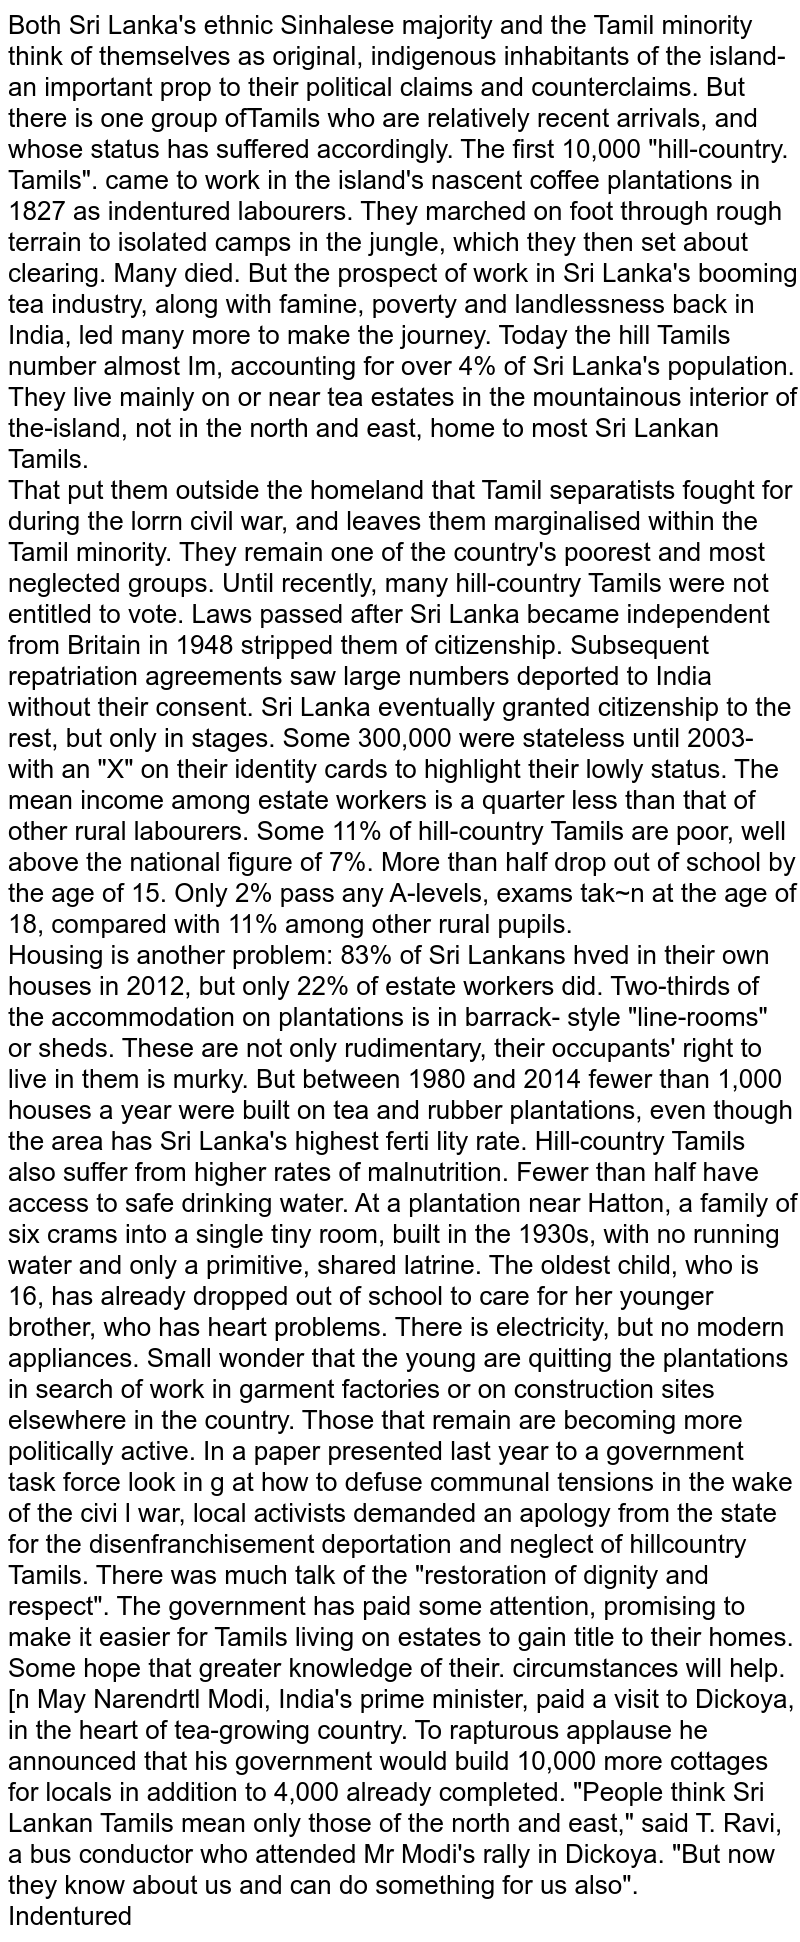 """Both Sri Lanka's ethnic Sinhalese majority and the Tamil minority think of themselves as original, indigenous inhabitants of the island- an important prop to their political claims and counterclaims. But there is one group ofTamils who are relatively recent arrivals, and whose status has suffered accordingly. The first 10,000 """"hill-country. Tamils"""". came to work in the island's nascent coffee plantations in 1827 as indentured labourers. They marched on foot through rough terrain to isolated camps in the jungle, which they then set about clearing. Many died. But the prospect of work in Sri Lanka's booming tea industry, along with famine, poverty and landlessness back in India, led many more to make the journey. Today the hill Tamils number almost Im, accounting for over 4% of Sri Lanka's population. They live mainly on or near tea estates in the mountainous interior of the-island, not in the north and east, home to most Sri Lankan Tamils.  <br> That put them outside the homeland that Tamil separatists fought for during the lorrn civil war, and leaves them marginalised within the Tamil minority. They remain one of the country's poorest and most neglected groups. Until recently, many hill-country Tamils were not entitled to vote. Laws passed after Sri Lanka became independent from Britain in 1948 stripped them of citizenship. Subsequent repatriation agreements saw large numbers deported to India without their consent. Sri Lanka eventually granted citizenship to the rest, but only in stages. Some 300,000 were stateless until 2003-with an """"X"""" on their identity cards to highlight their lowly status. The mean income among estate workers is a quarter less than that of other rural labourers. Some 11% of hill-country Tamils are poor, well above the national figure of 7%. More than half drop out of school by the age of 15. Only 2% pass any A-levels, exams tak~n at the age of 18, compared with 11% among other rural pupils.  <br>  Housing is another problem: 83% of Sri Lankans h"""